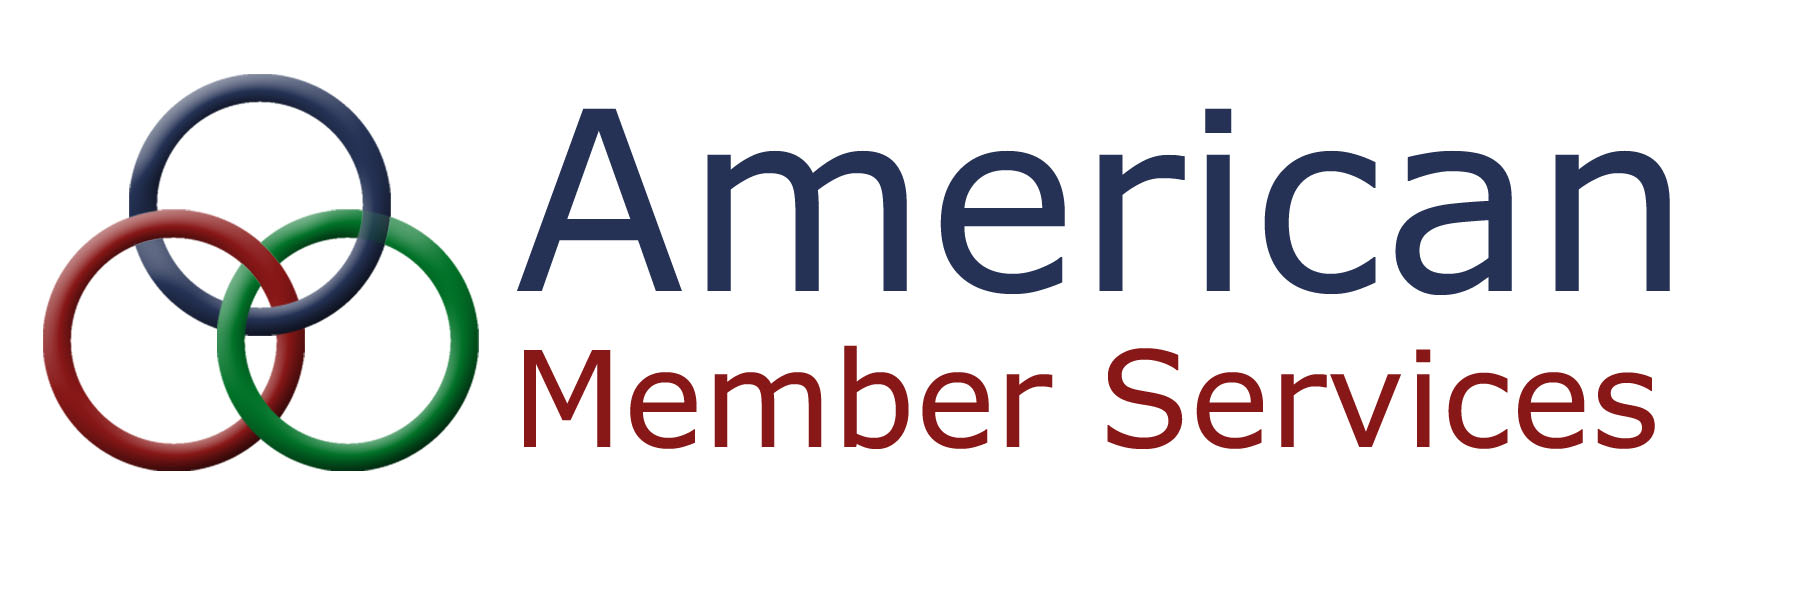 American Member Services